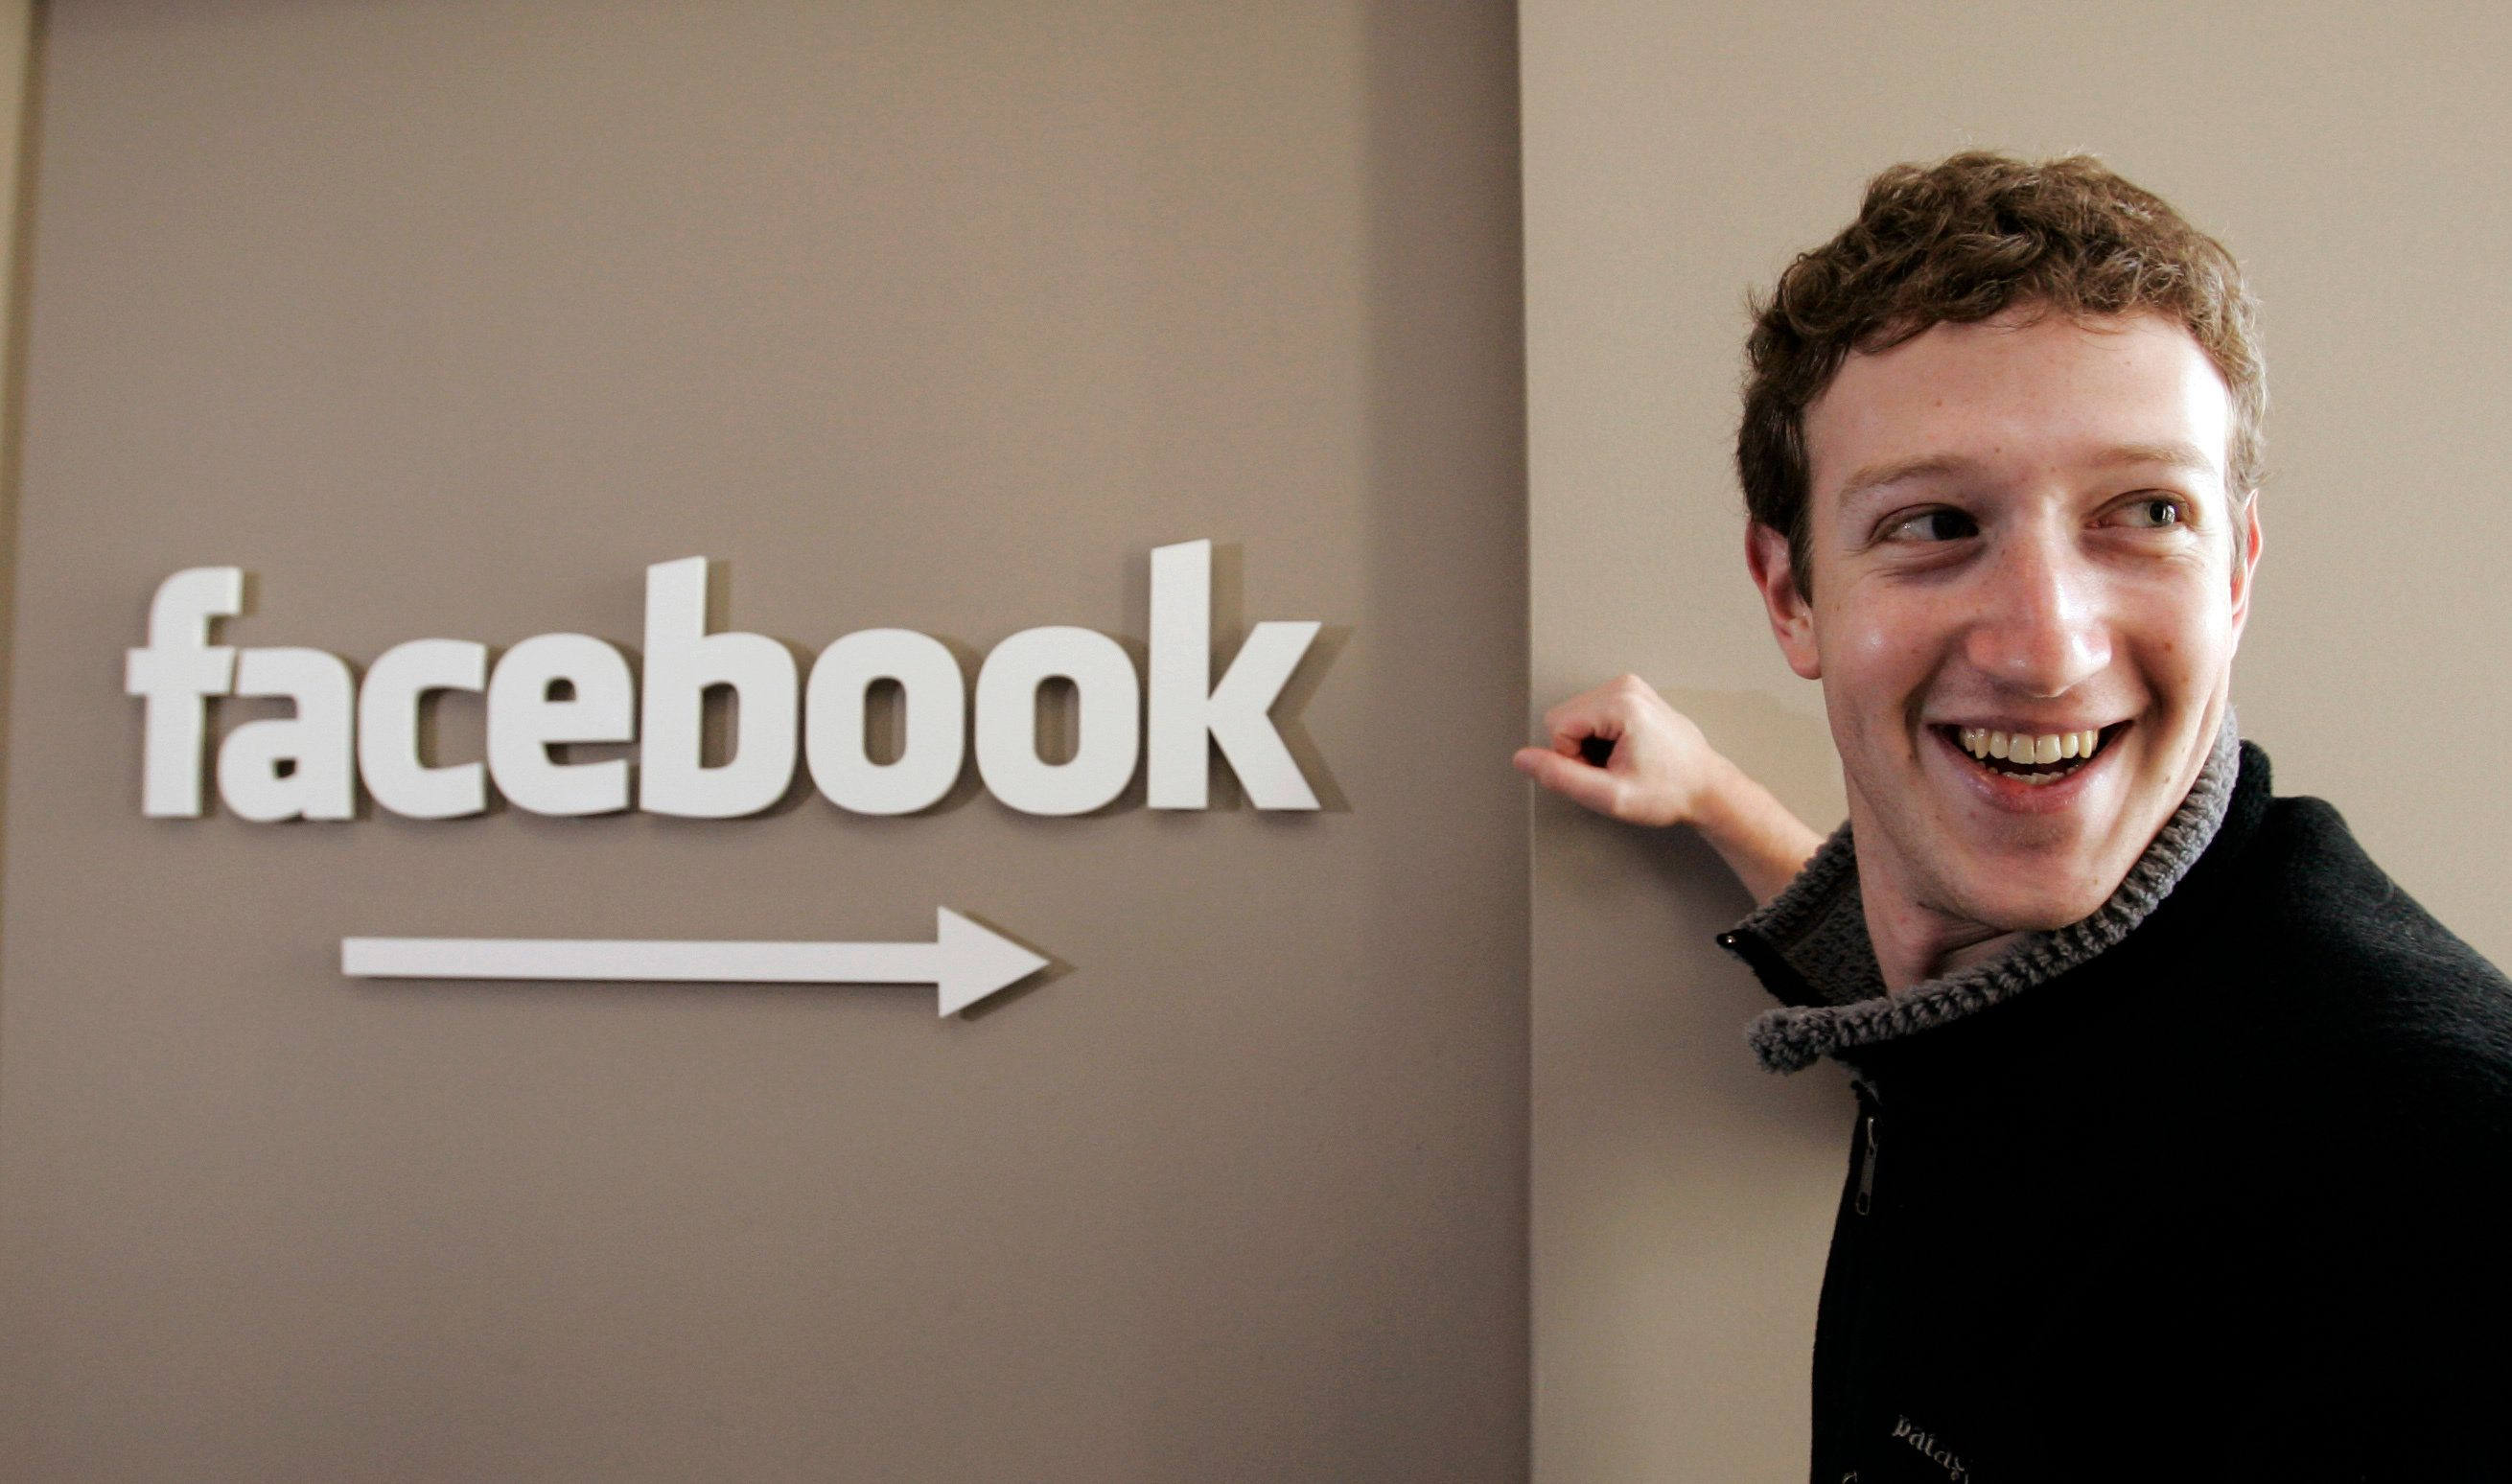 "FILE- This Feb. 5, 2007 file photo shows Facebook founder Mark Zuckerberg at Facebook headquarters in Palo Alto, Calif. Zuckerberg's boyish appearance, even today, is a reminder of just how young he was when he created what would become the world's biggest social network, back in his dorm room at Harvard. ""I didn't know anything about building a company or global internet service,"" he wrote in January 2018. ""Over the years I've made almost every mistake you can imagine."" (AP Photo/Paul Sakuma, File)"